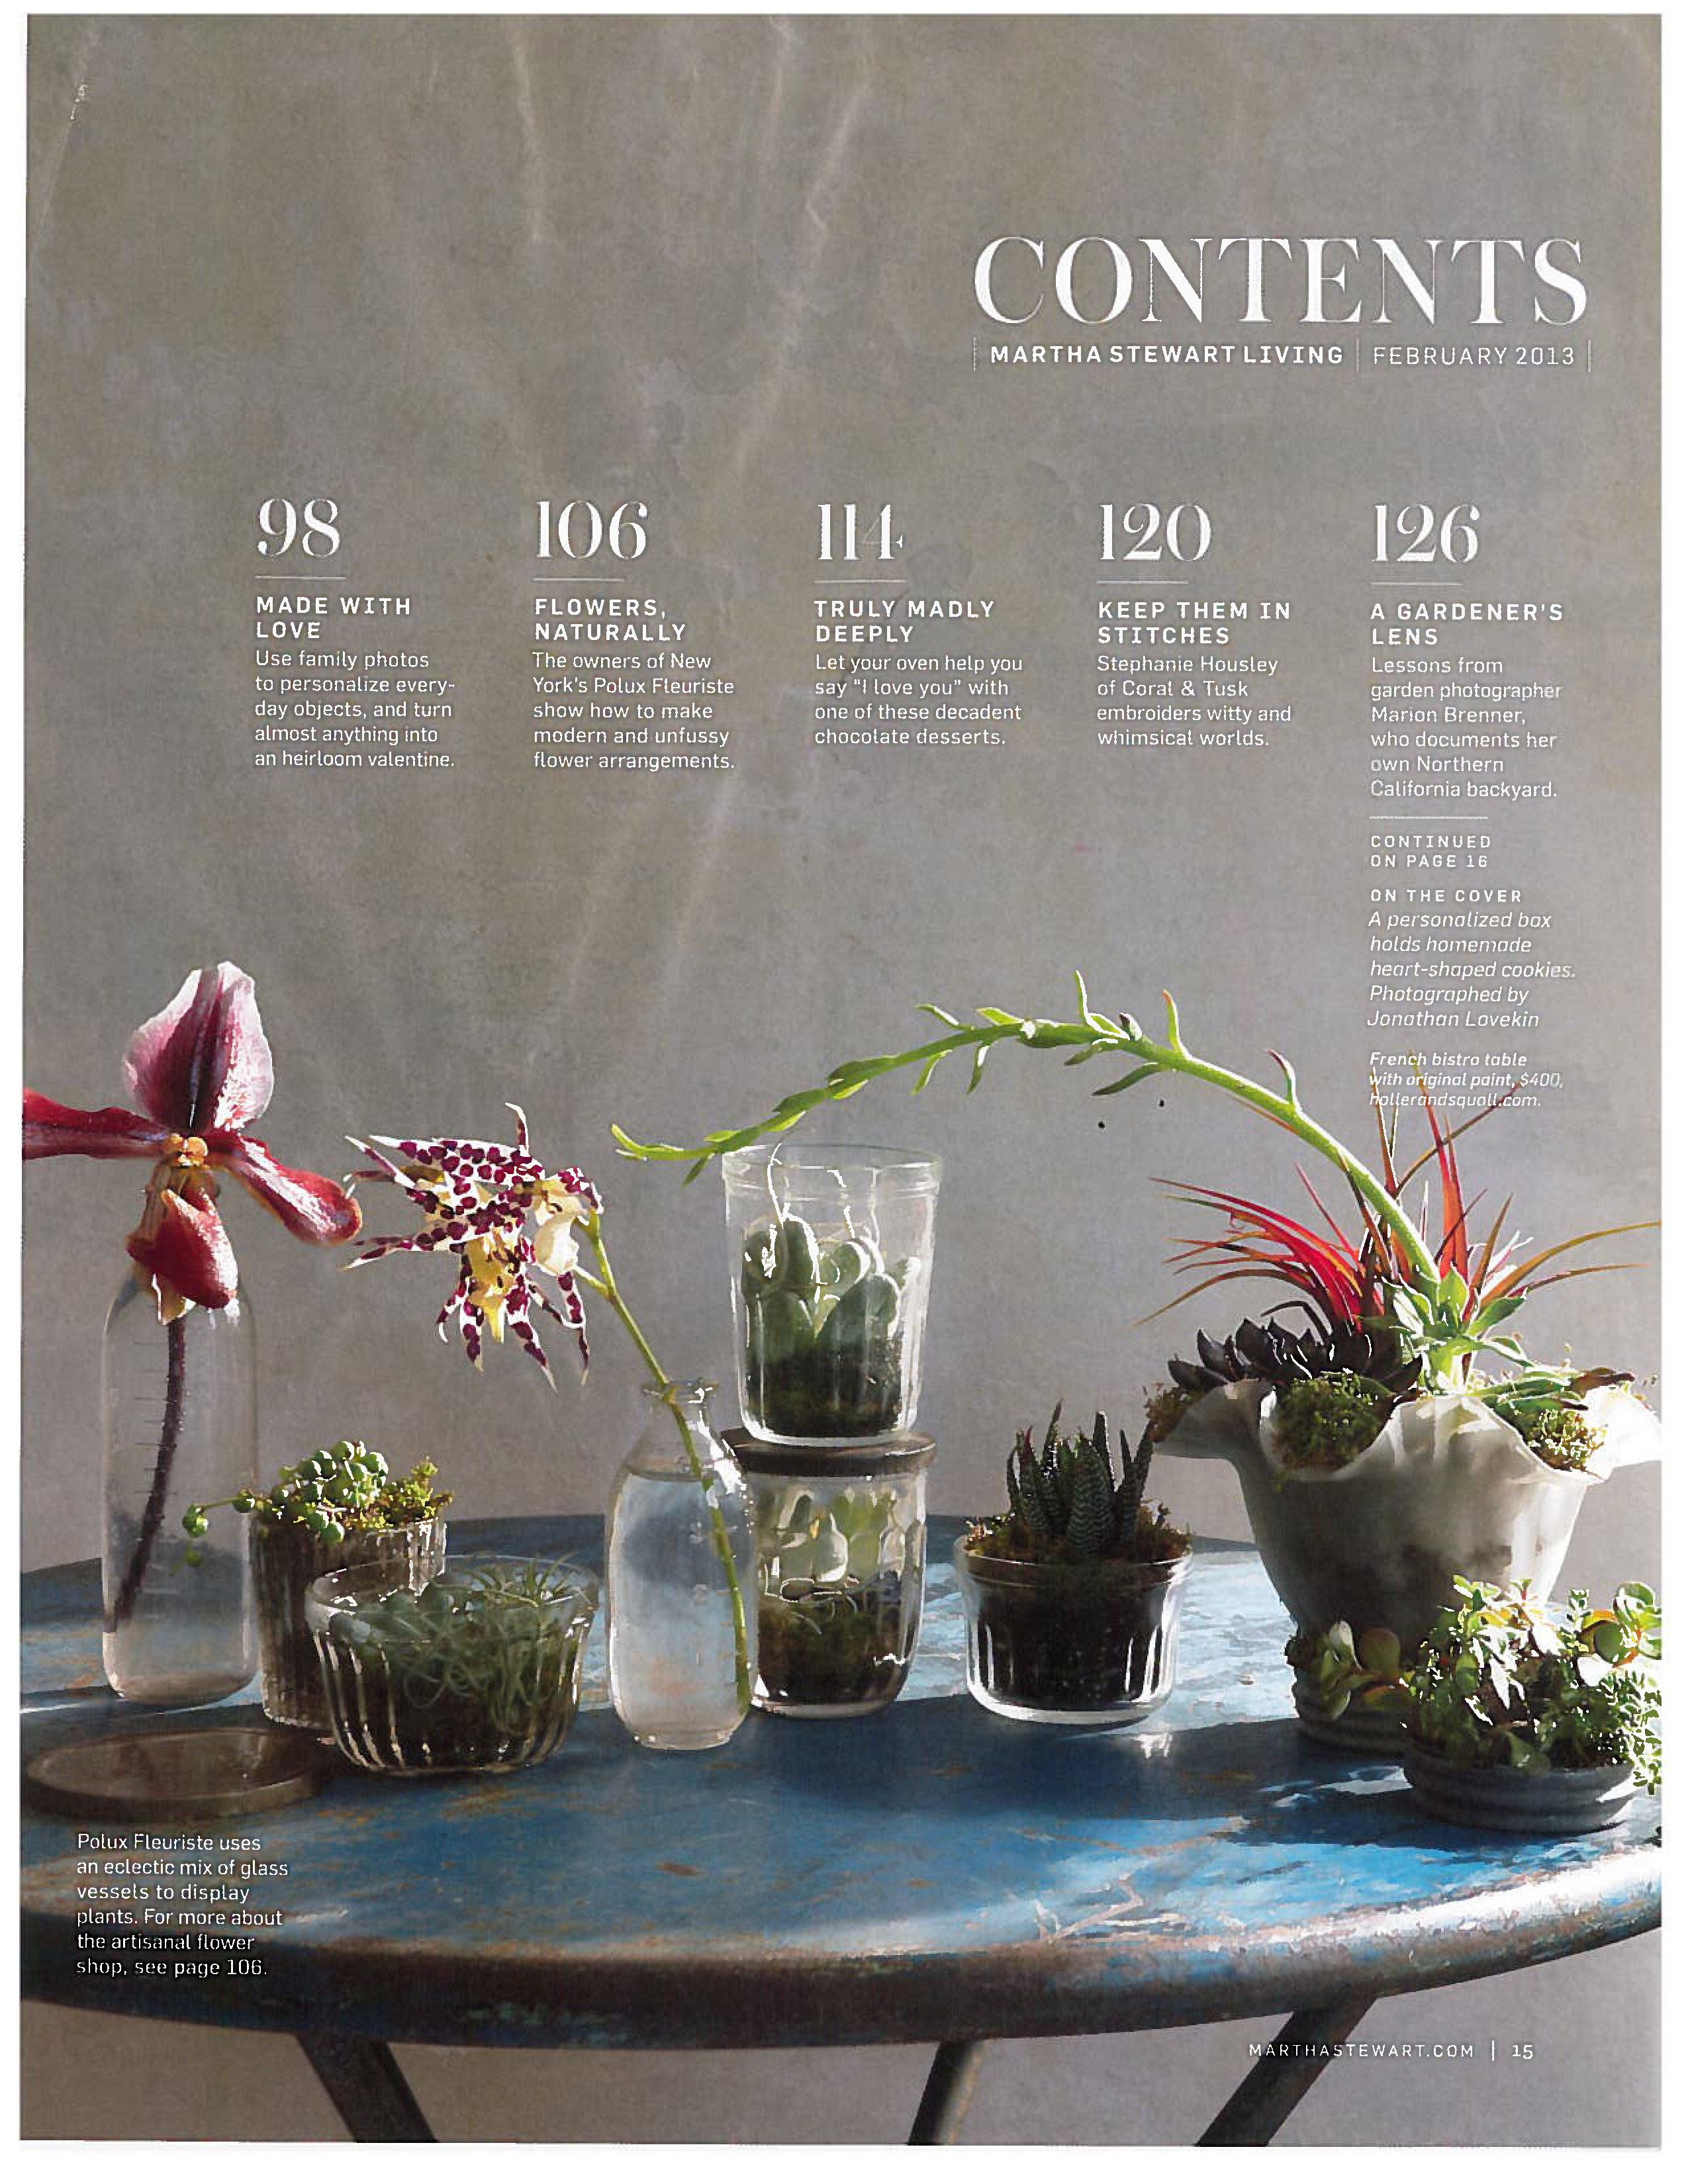 From Martha Stewart Magazine Table Of Contents Design 2013